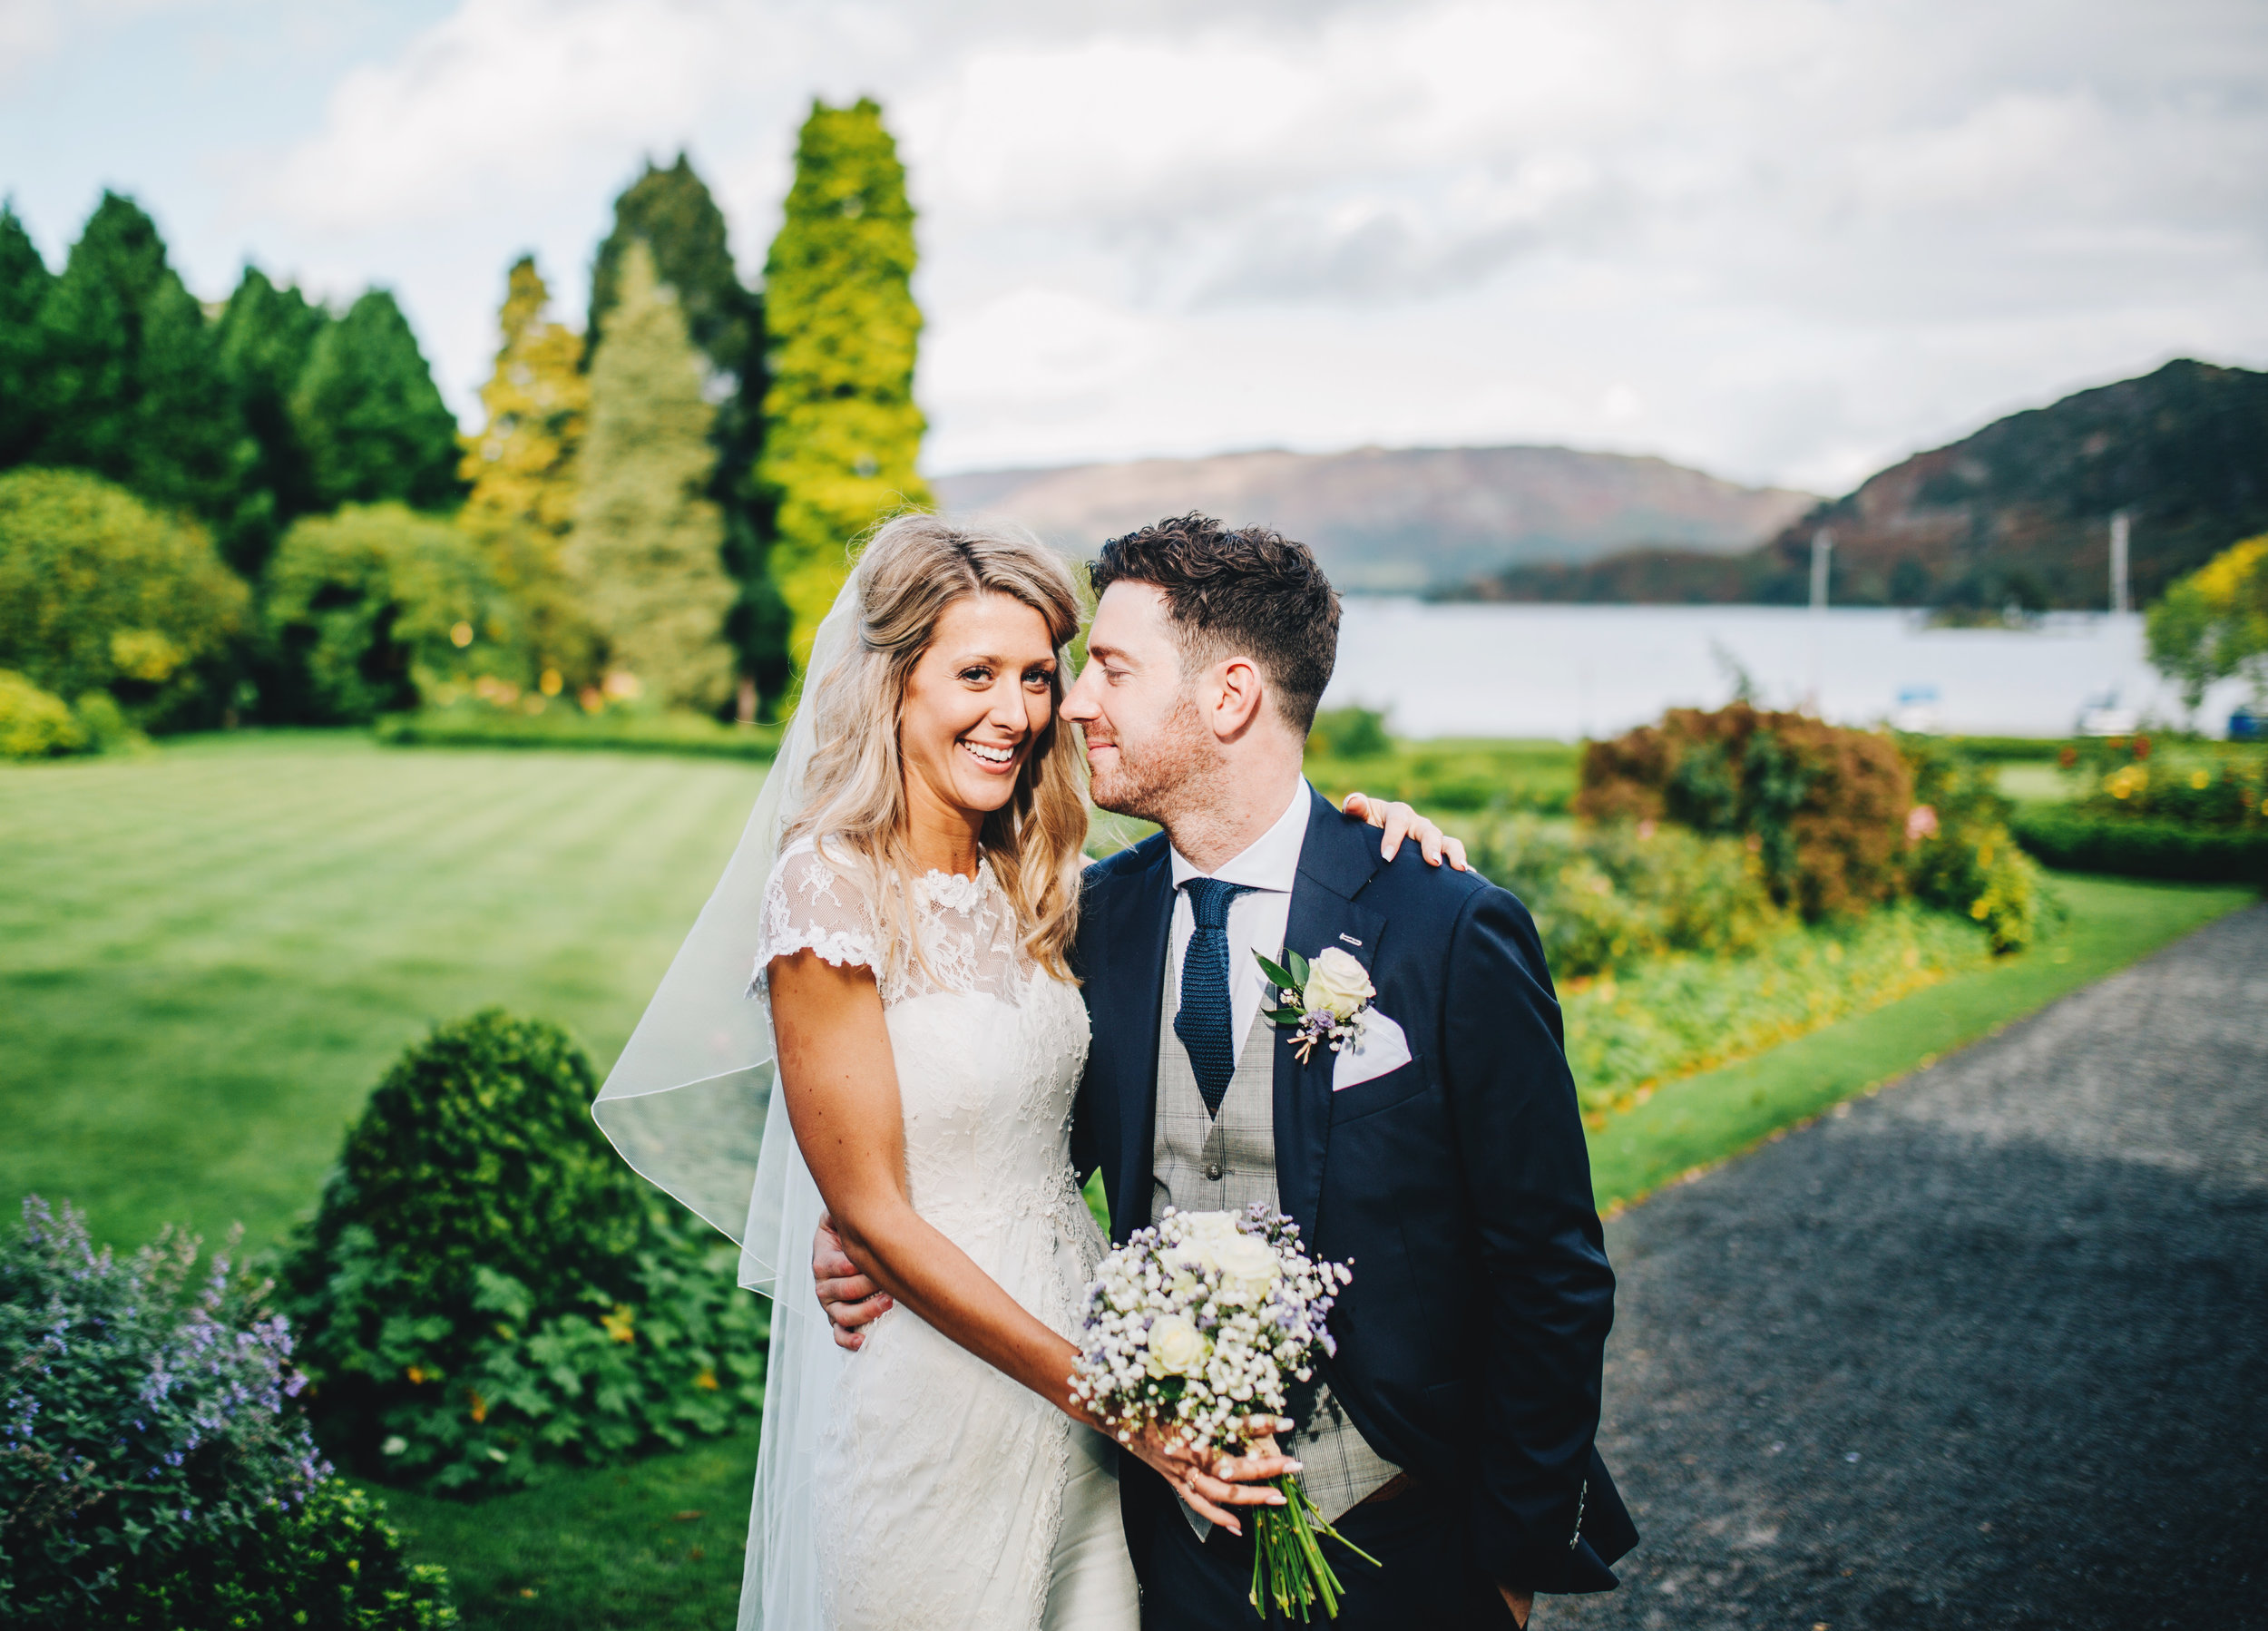 relaxed pictures of bride and groom - Inn on the Lake